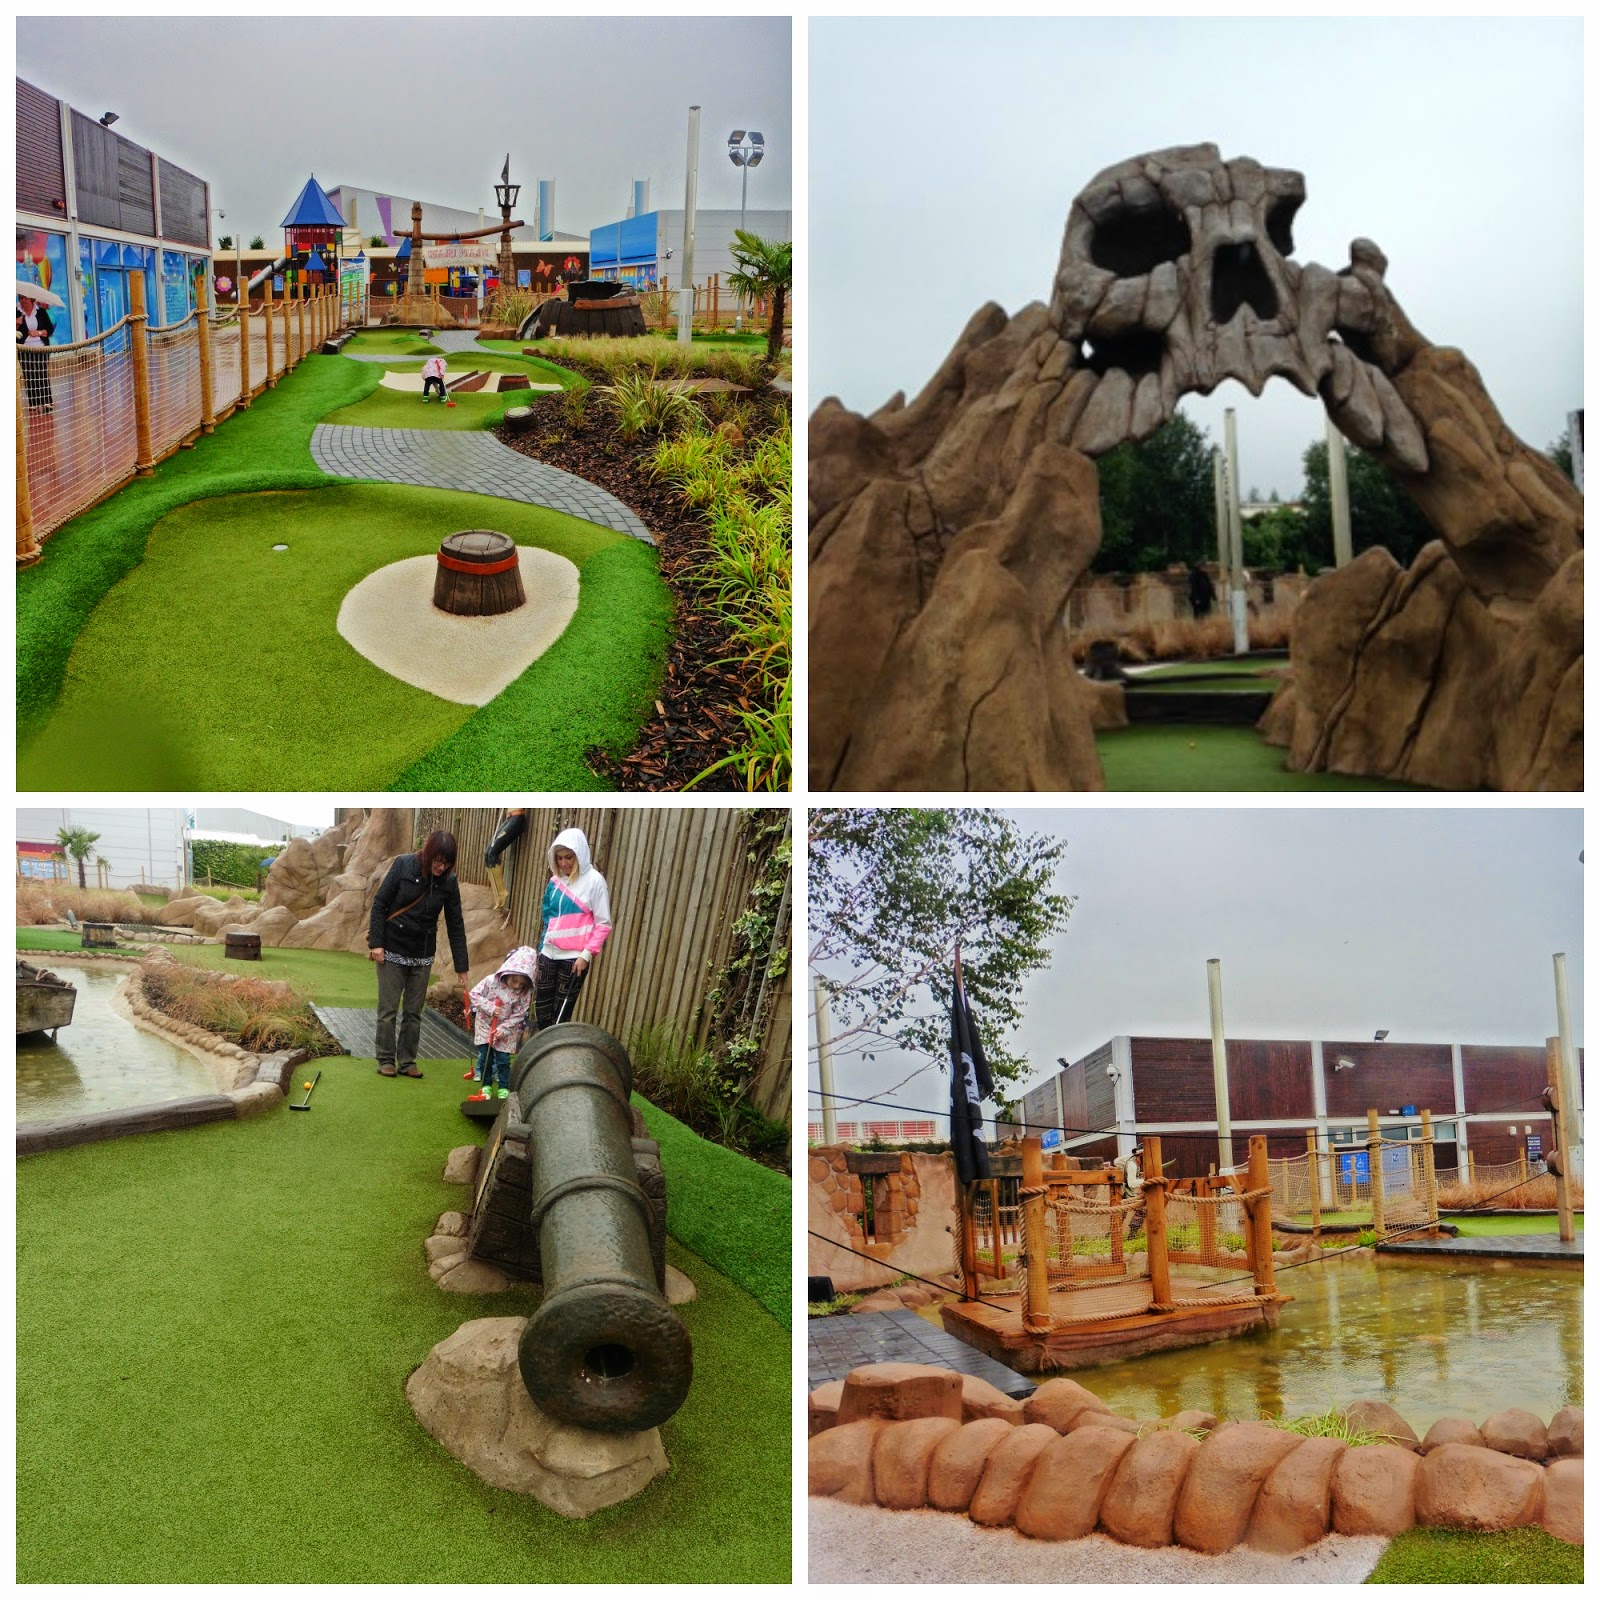 Pirate theme golf at Castleford